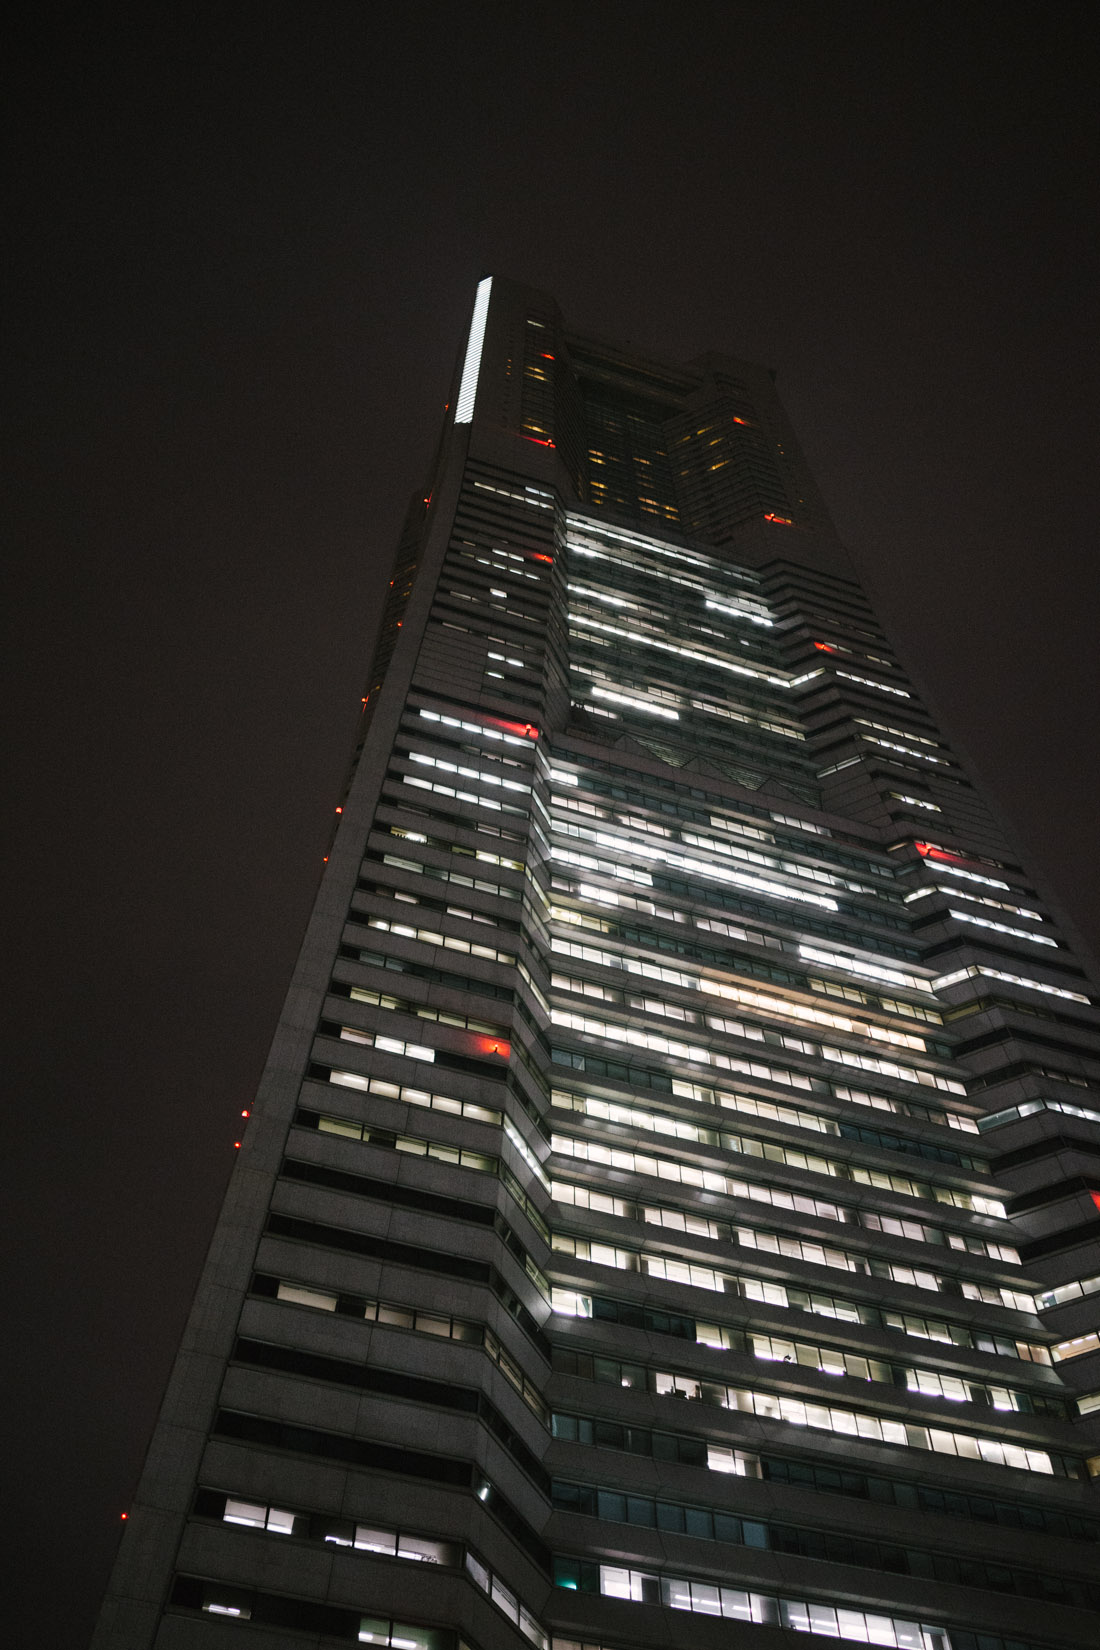 Landmark Tower, Japan's tallest skyscraper.